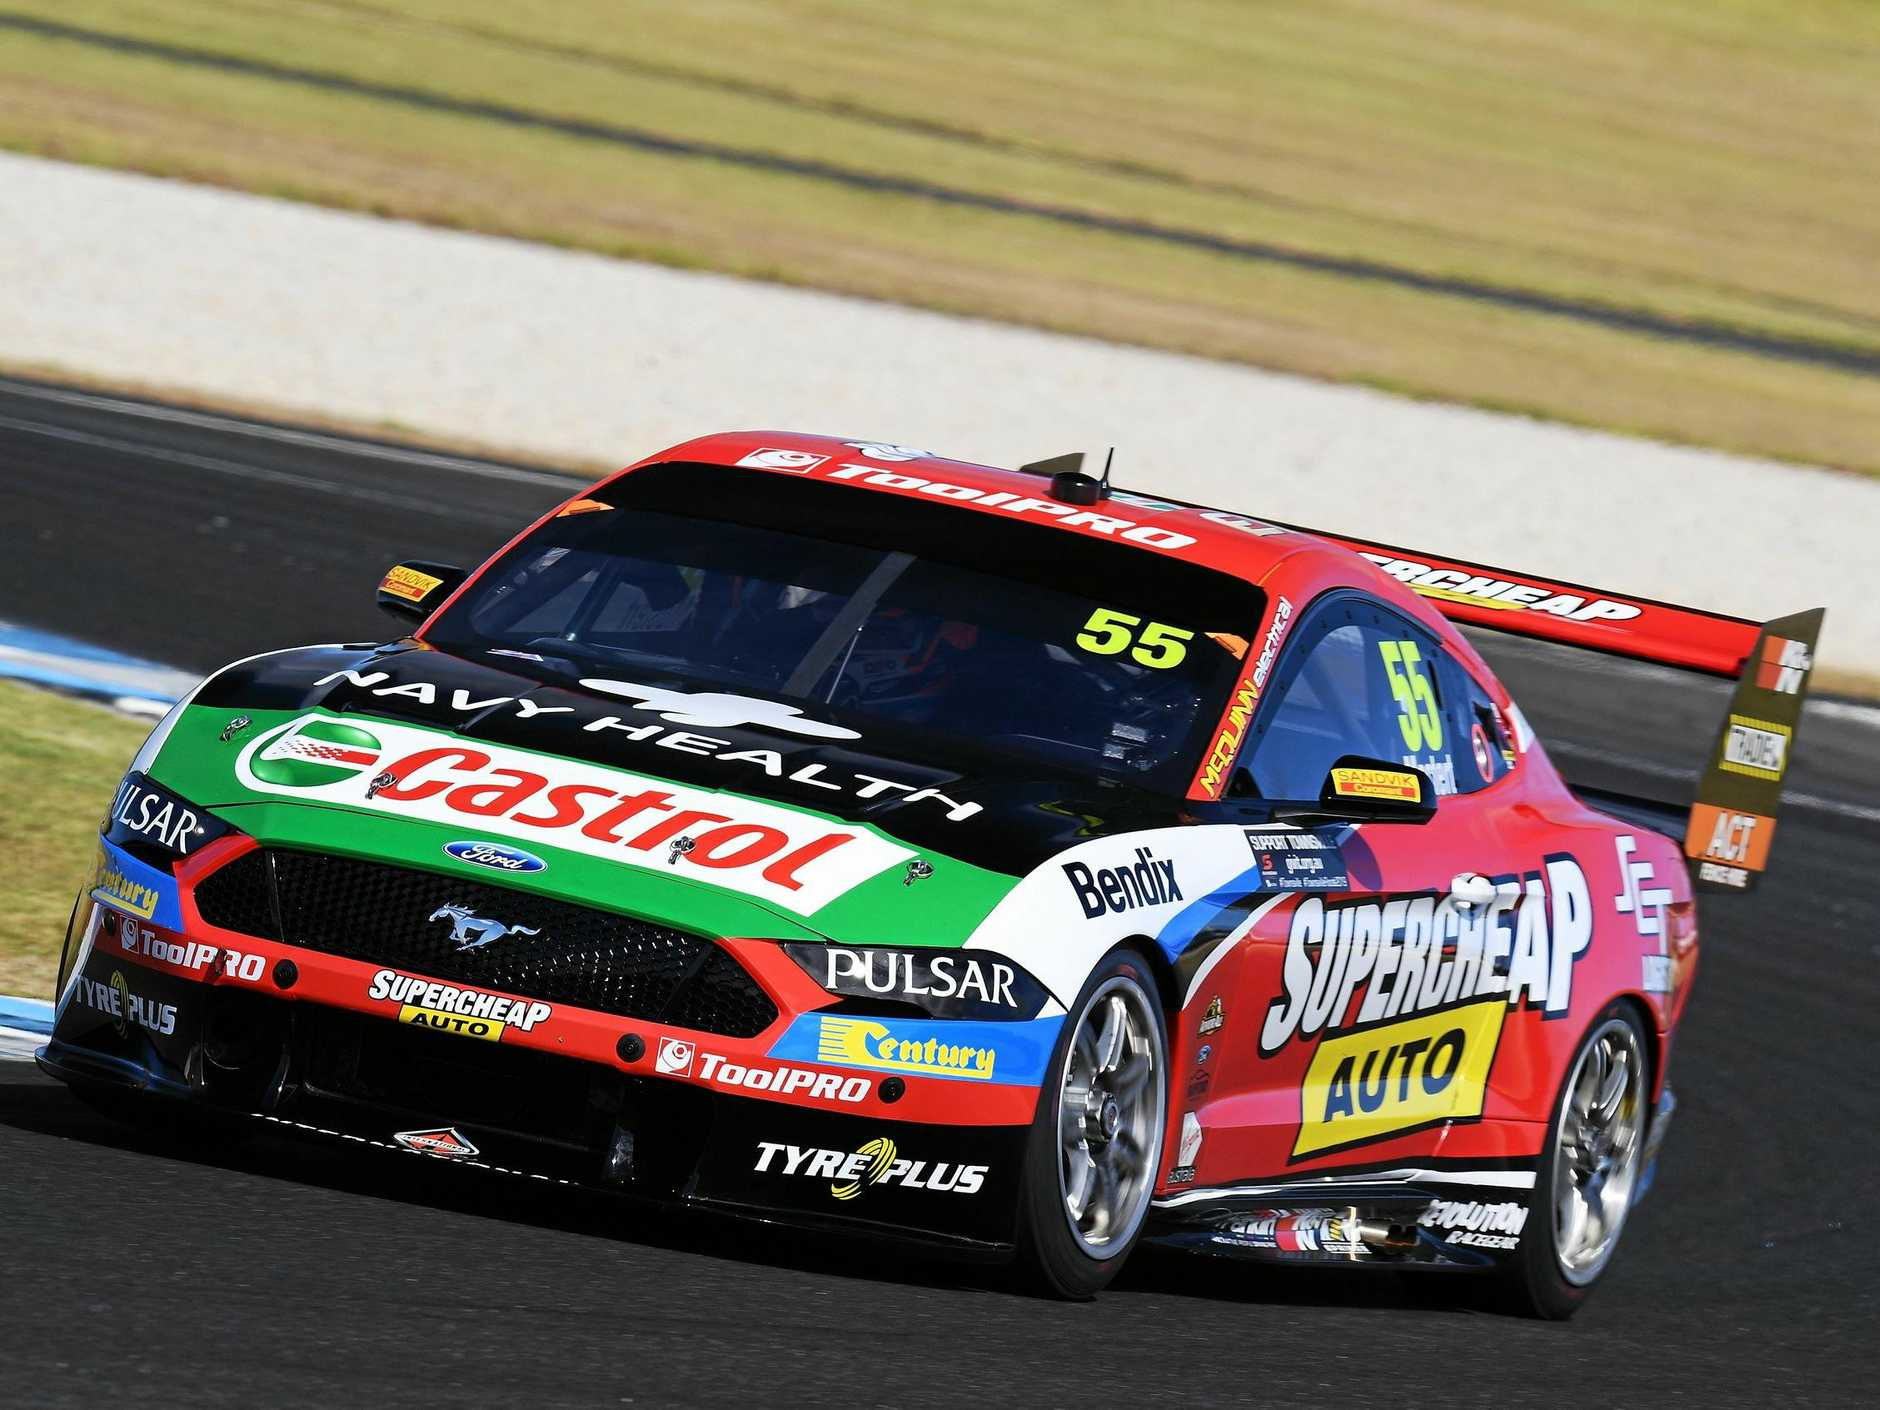 Chaz Mostert pushes his Supercheap Auto Racing Ford Mustang during the Supercars Season Test Day at Phillip Island on Thursday.  Picture: Daniel Kalisz/Getty Images